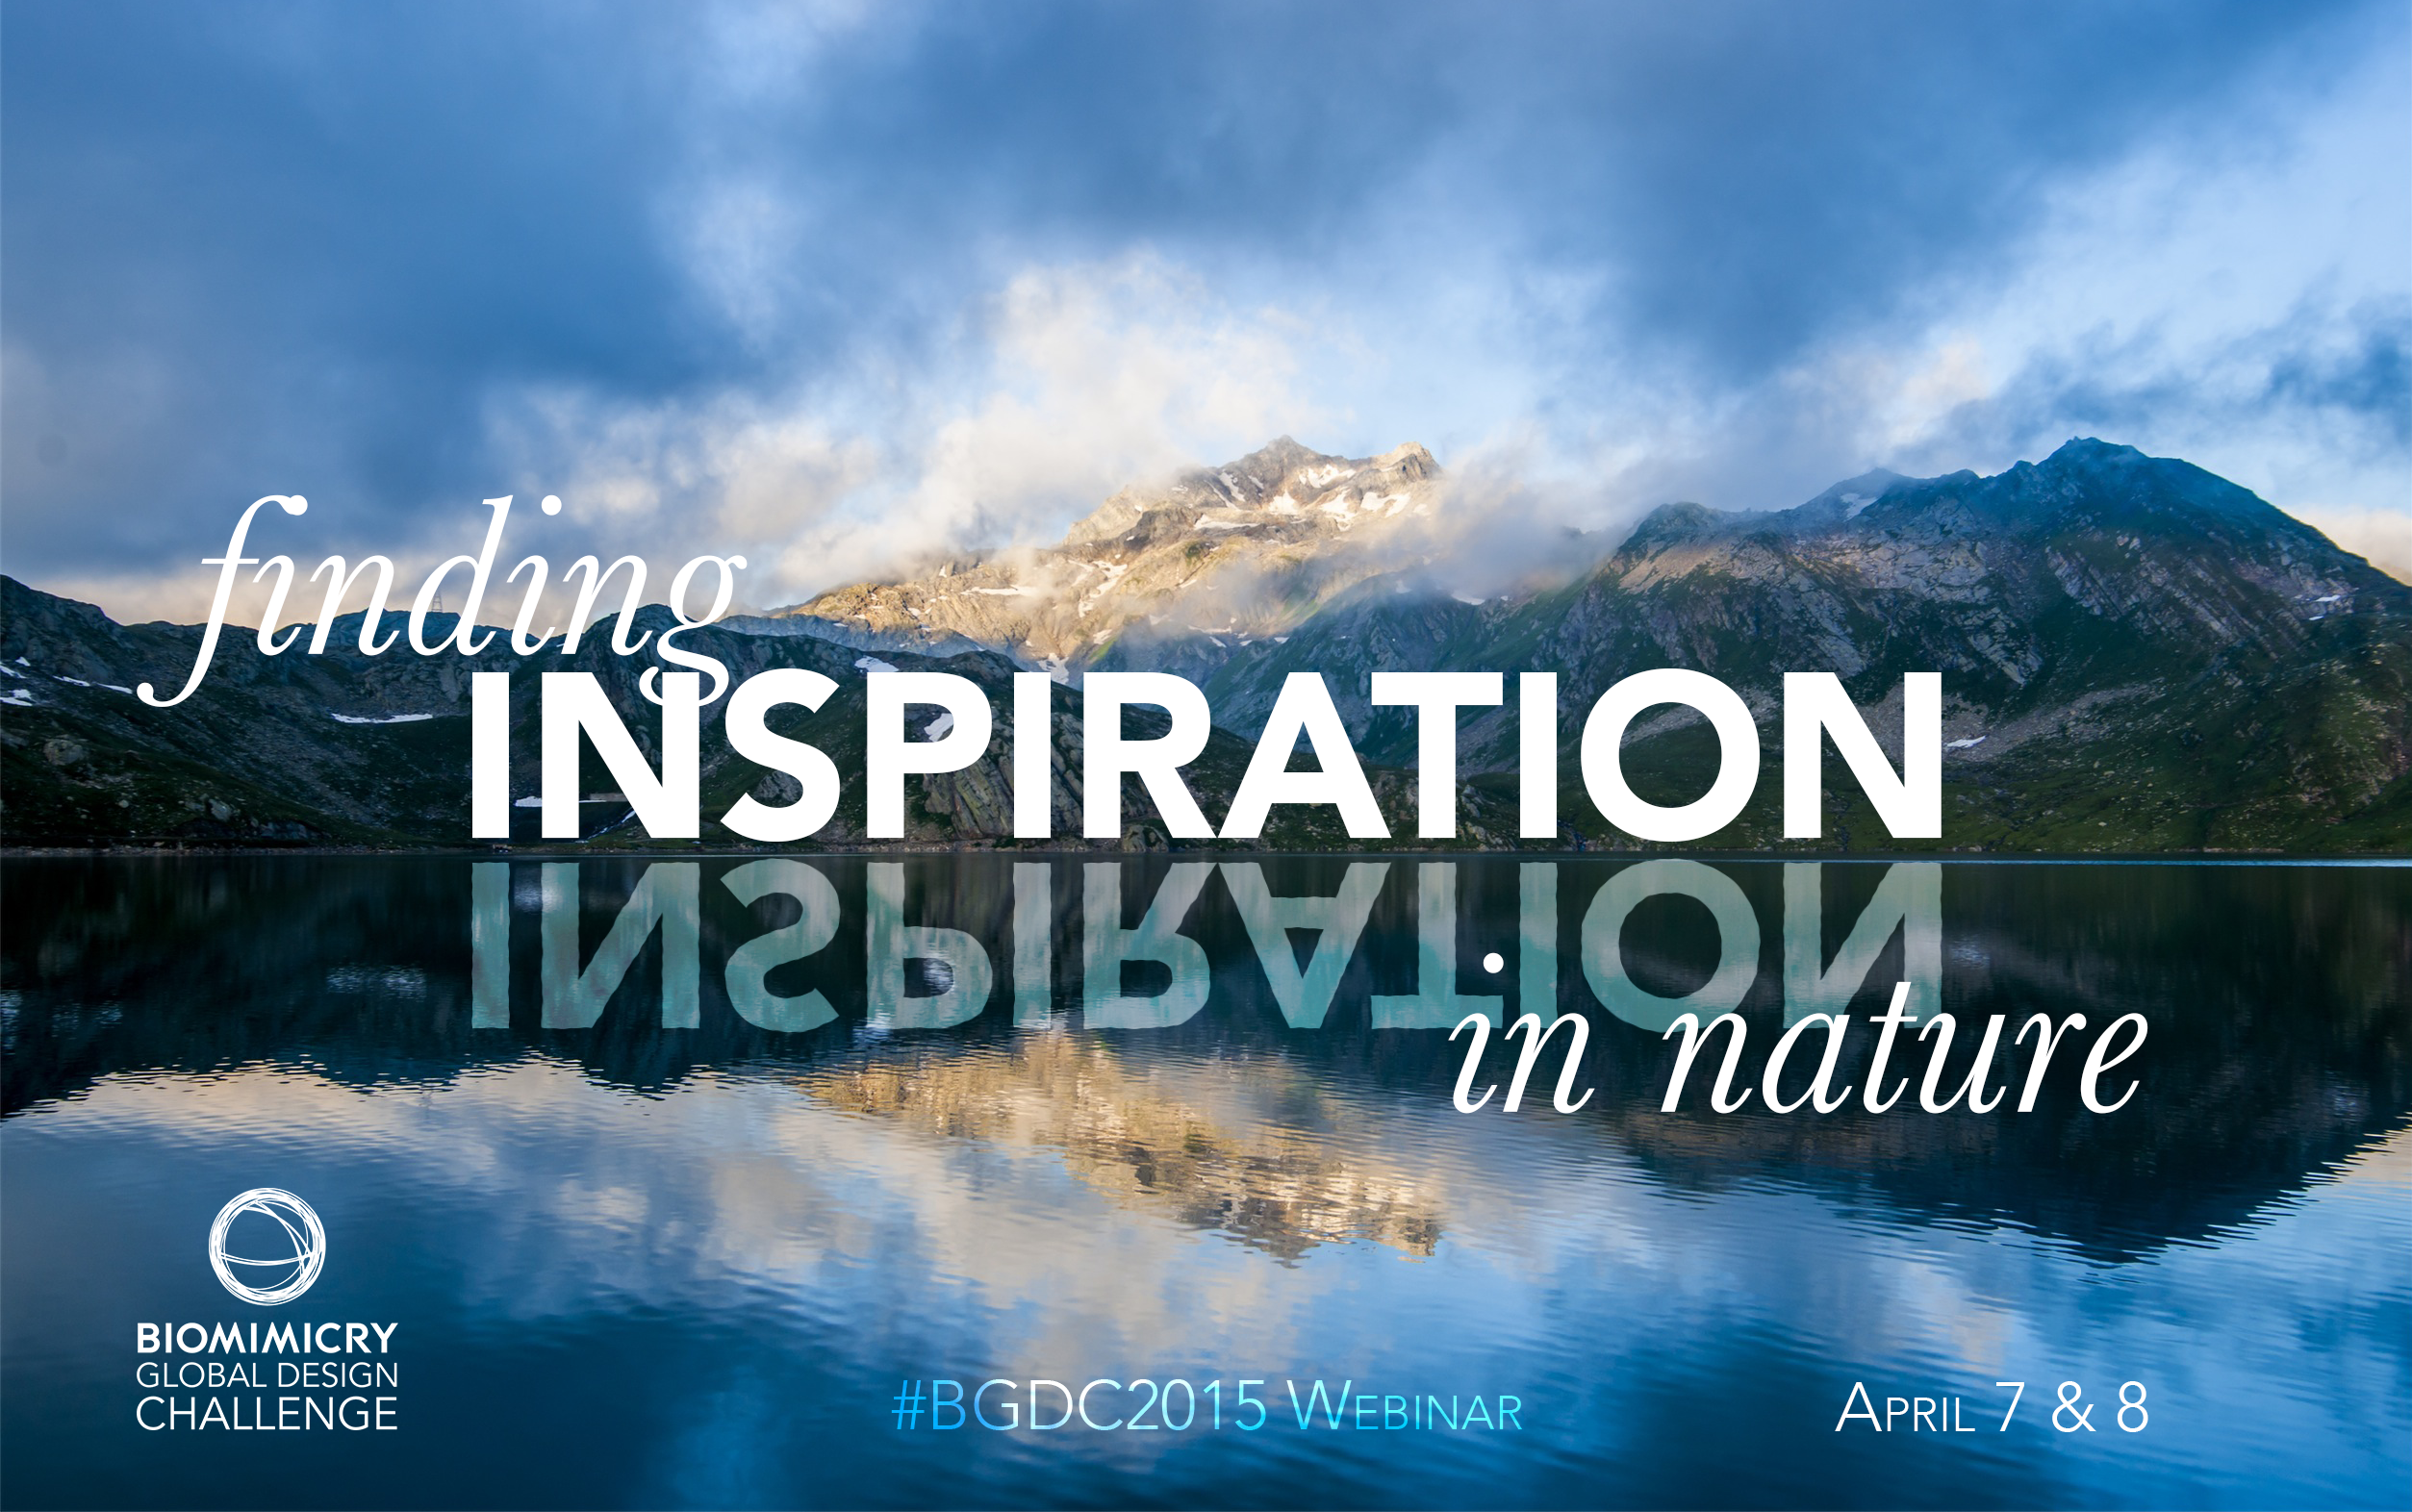 Join us on April 7 & 8 to learn how to find inspiration in nature